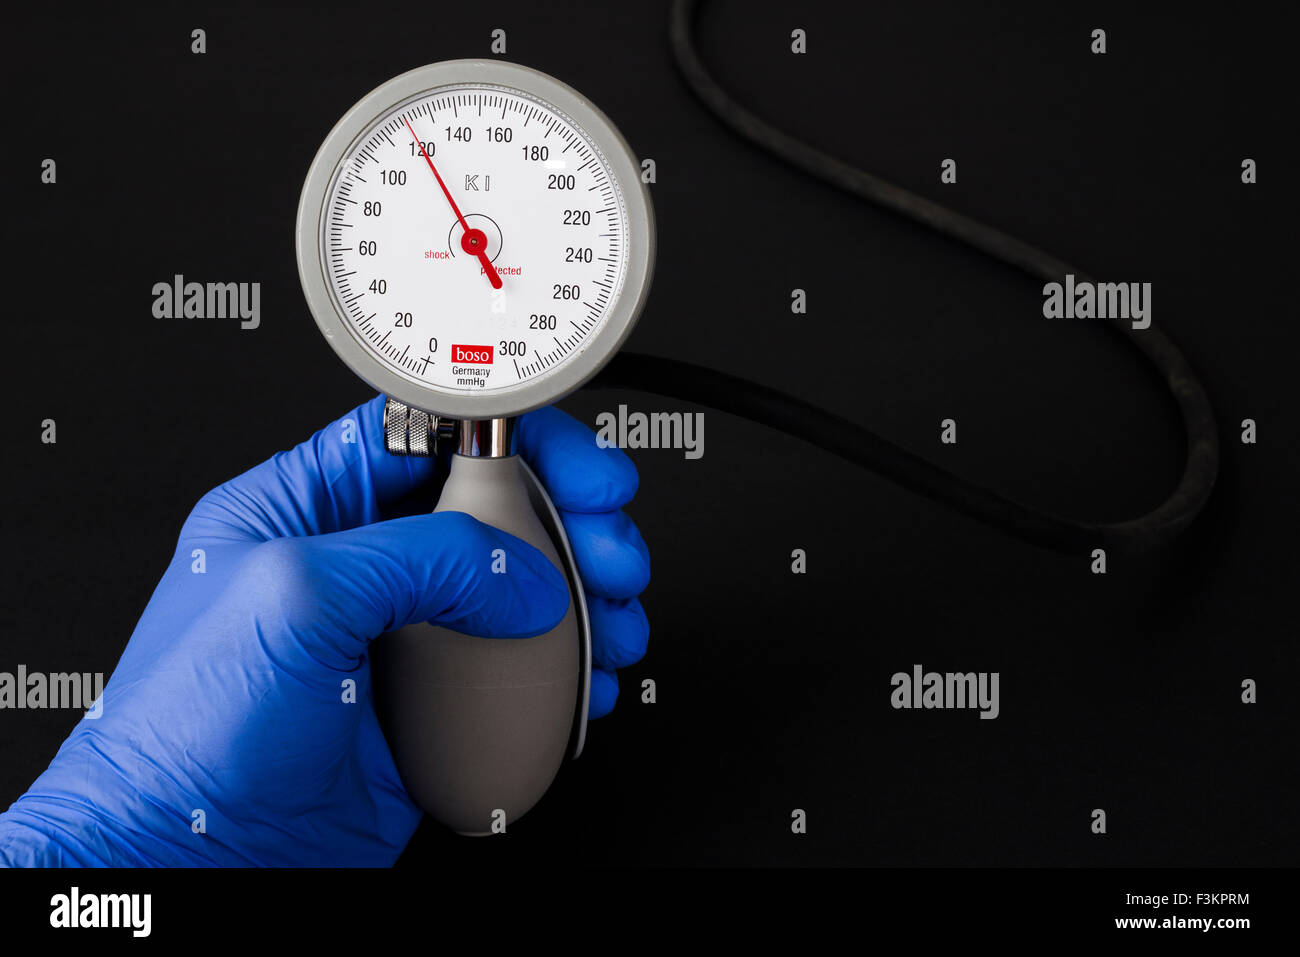 A hand in a blue medical glove is holding a sphygomanometer, blood pressure meter, for medical use, indicating normal - Stock Image